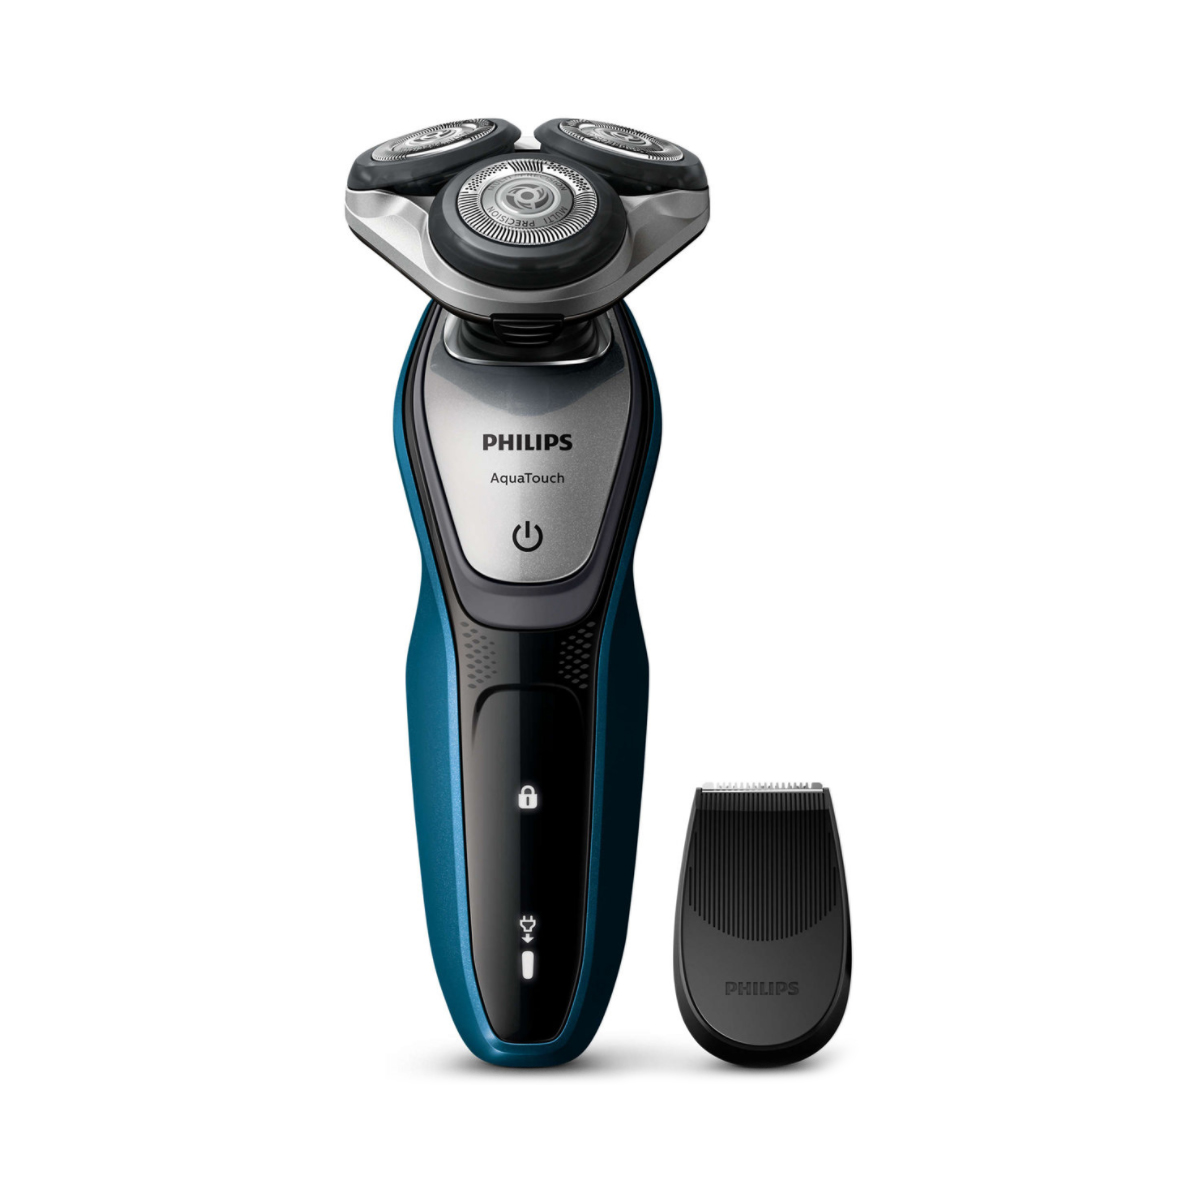 Philips S5420 AquaTouch Wet and Dry Electric Shaver